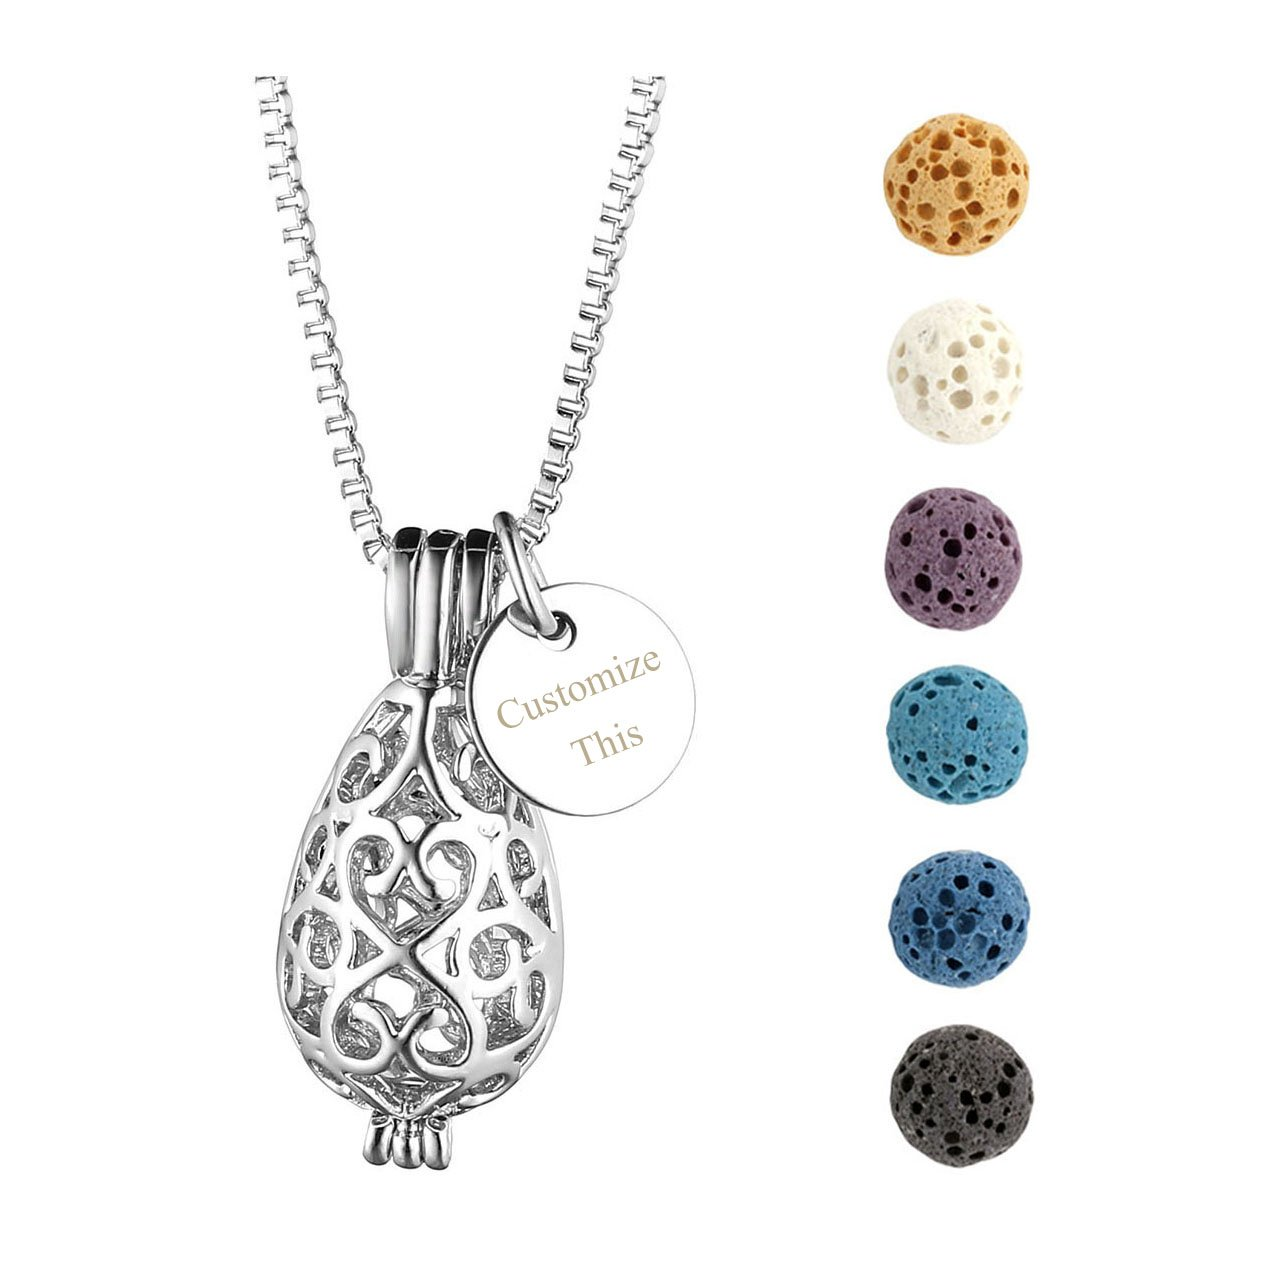 Jovivi Free Engraving - Personalized Custom Engraved Round Tag ID Necklace Silver Aromatherapy Essential Oil Diffuser Locket Pendant With 6 Dyed Lava Stone Beads(Oval)